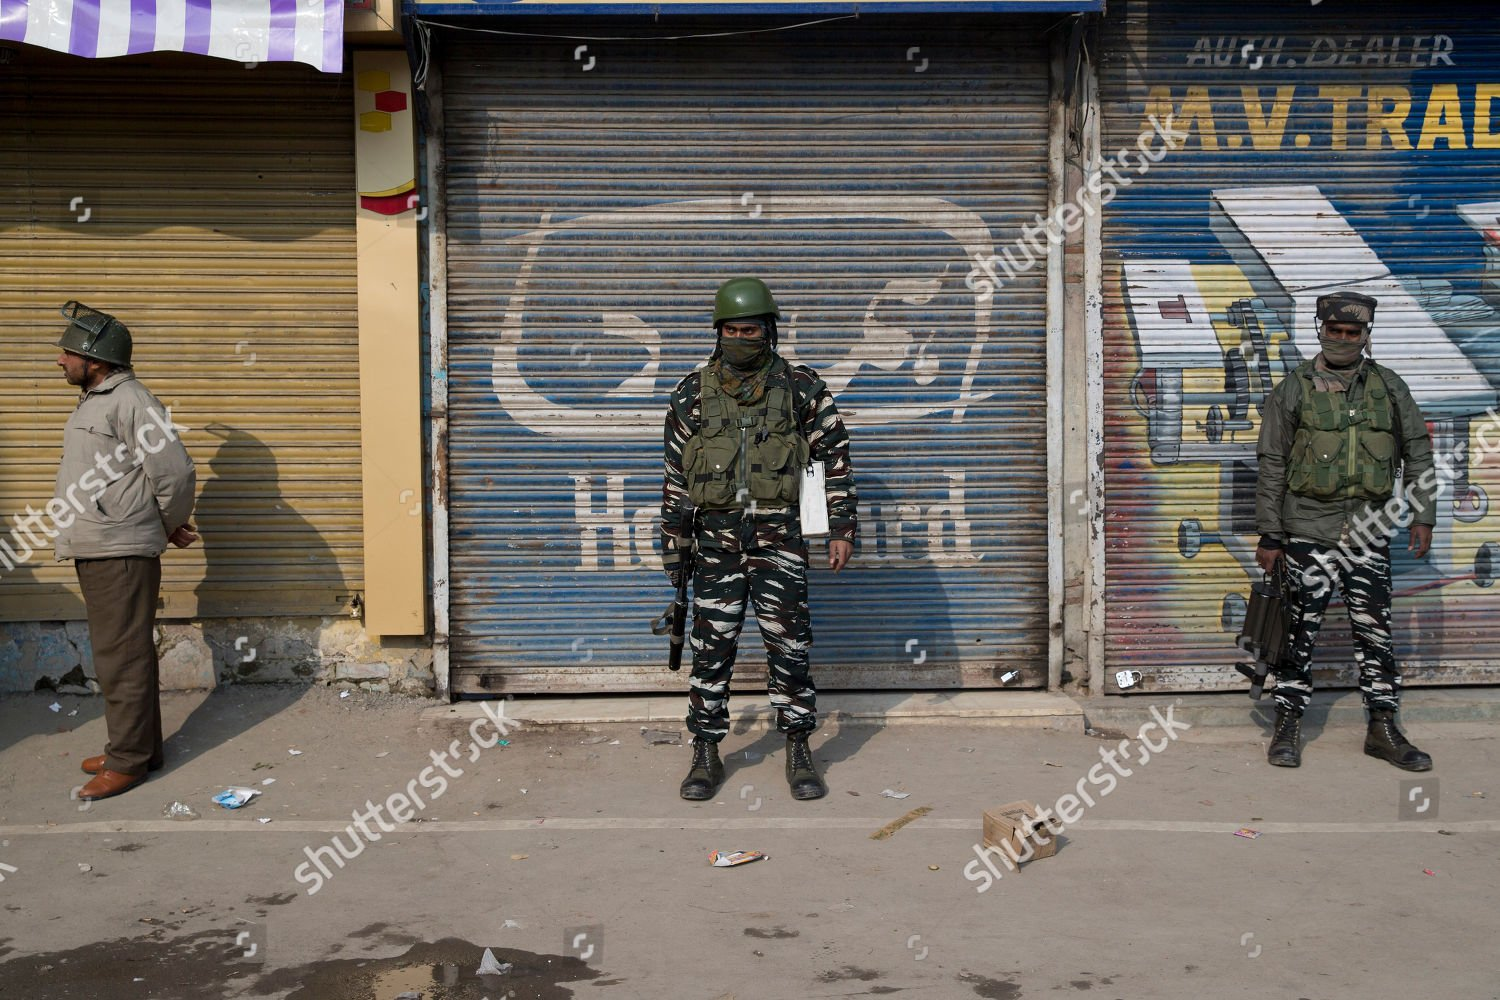 kashmir-protest-srinagar-india-shutterstock-editorial-10108469c.jpg